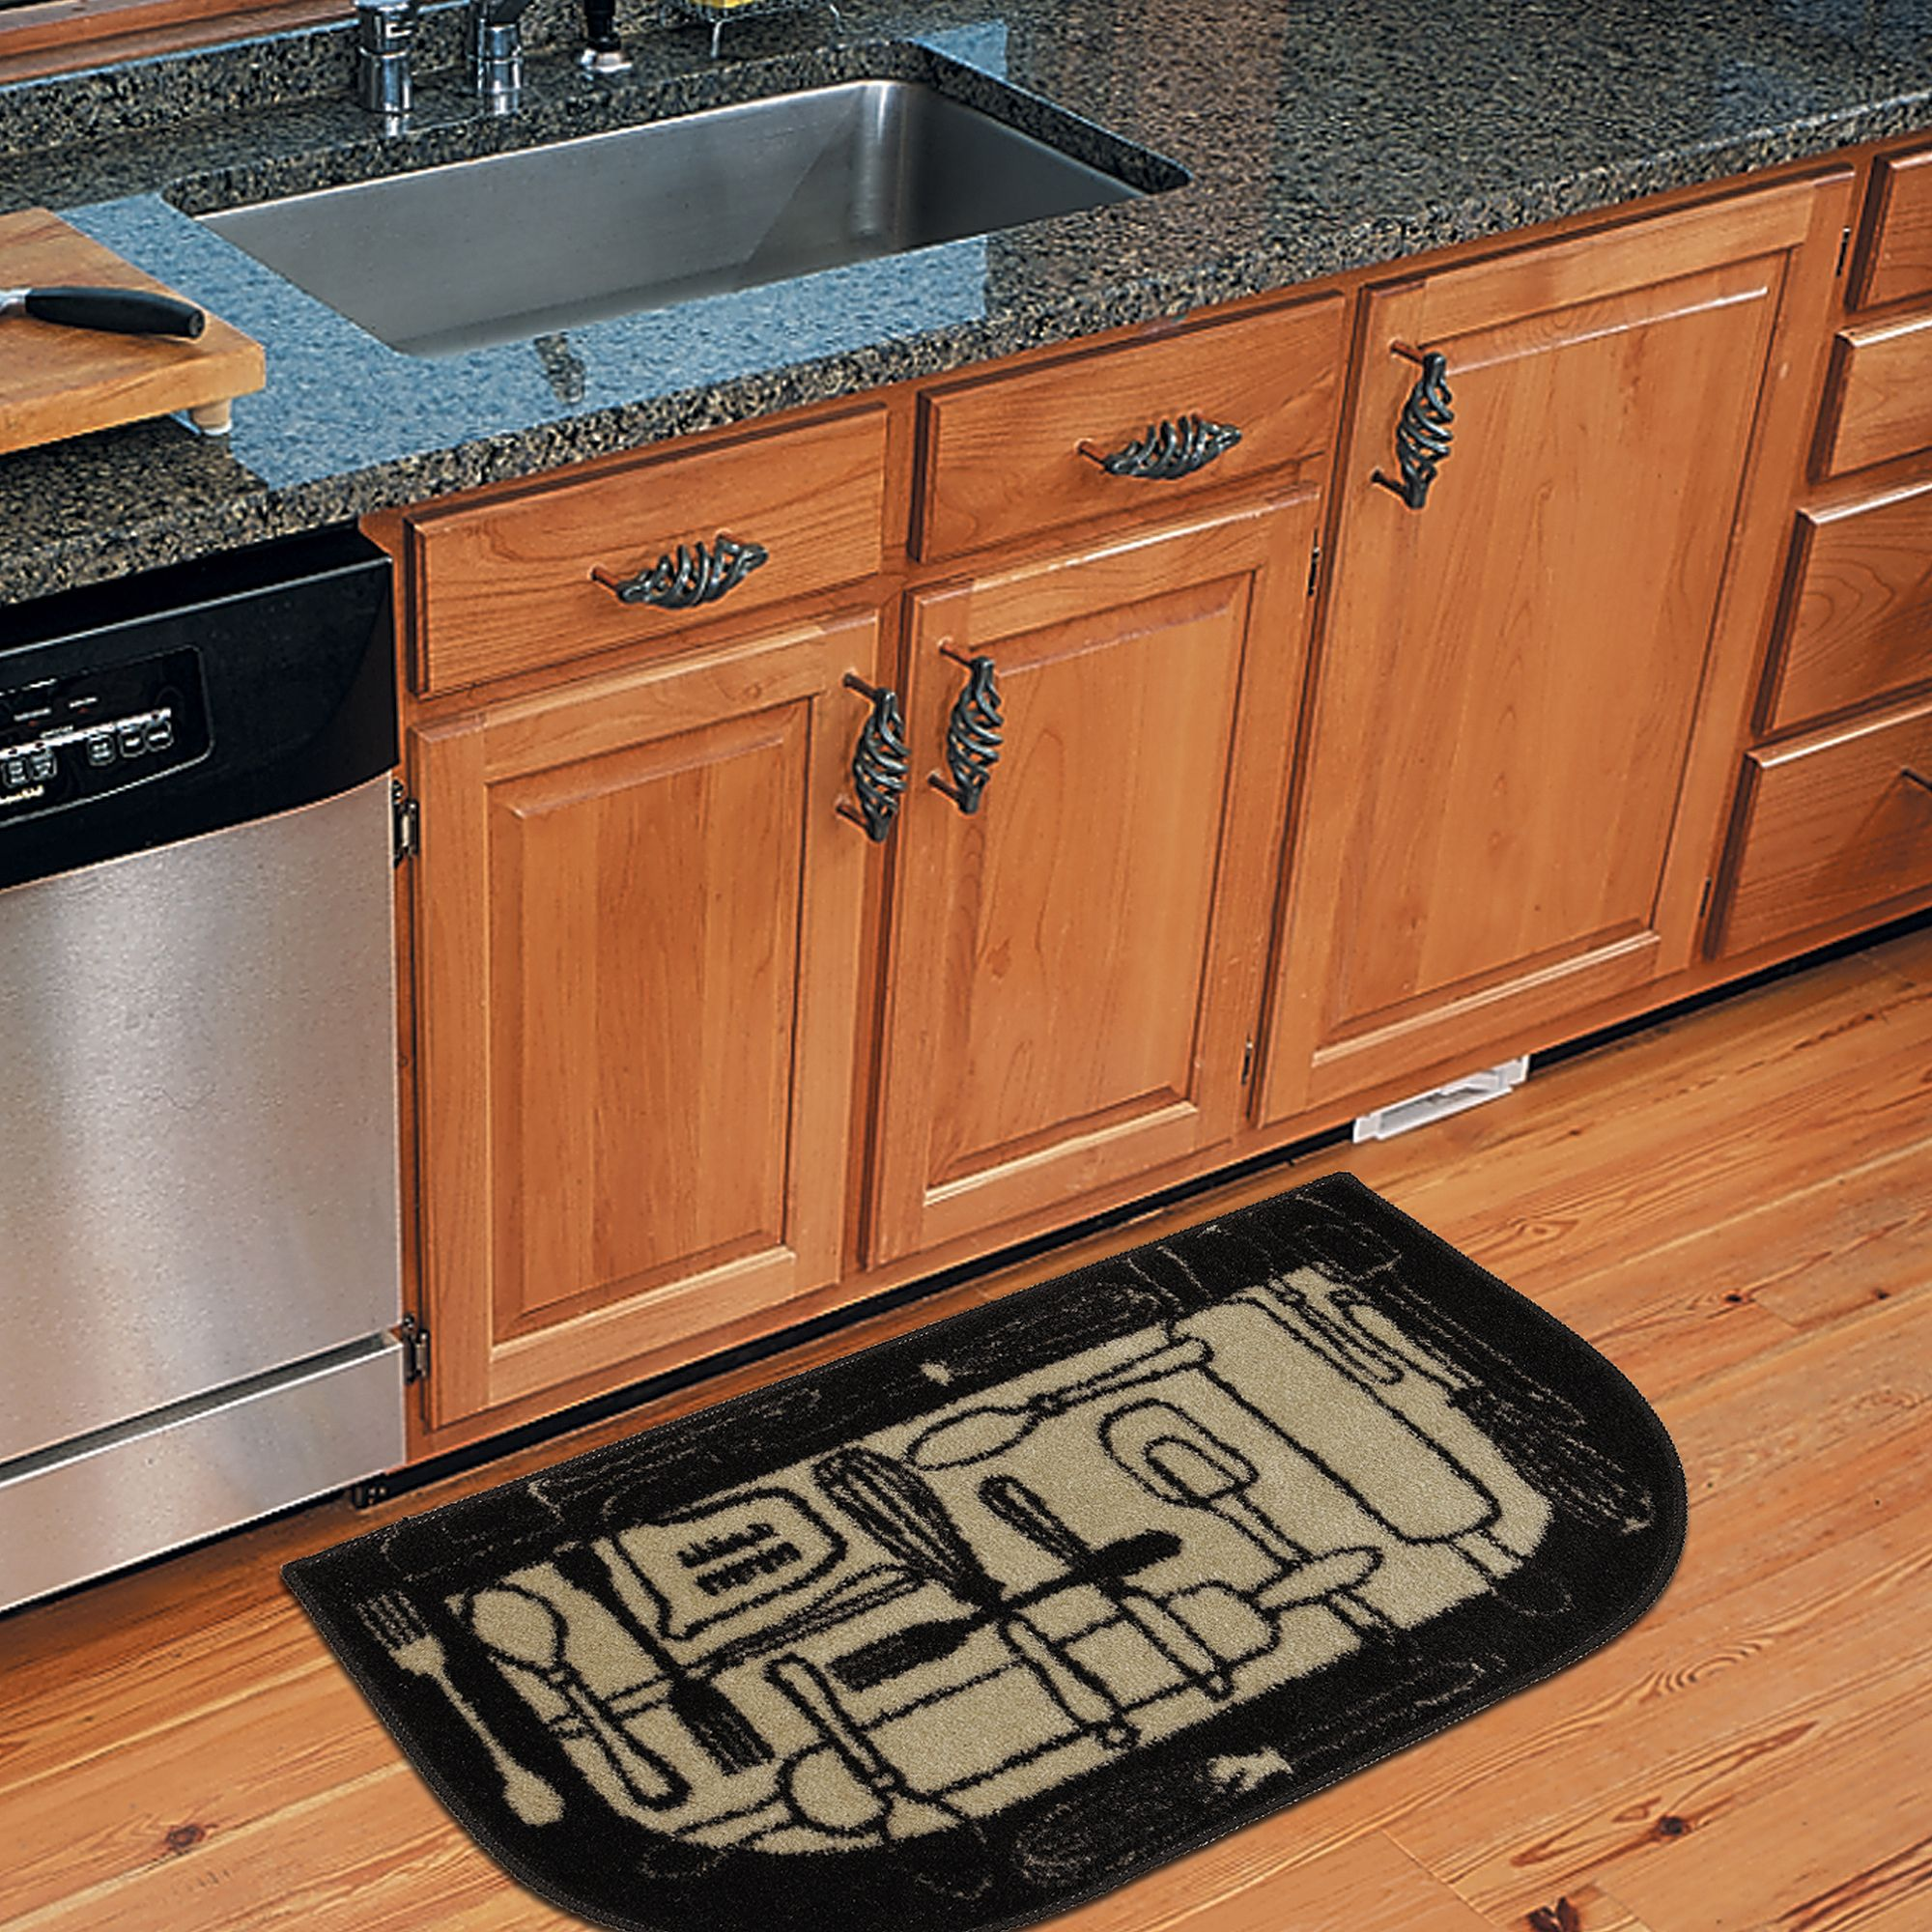 This Mohawk Home Kitchen Slice Rug Is Sure To Add Comfort And Charm